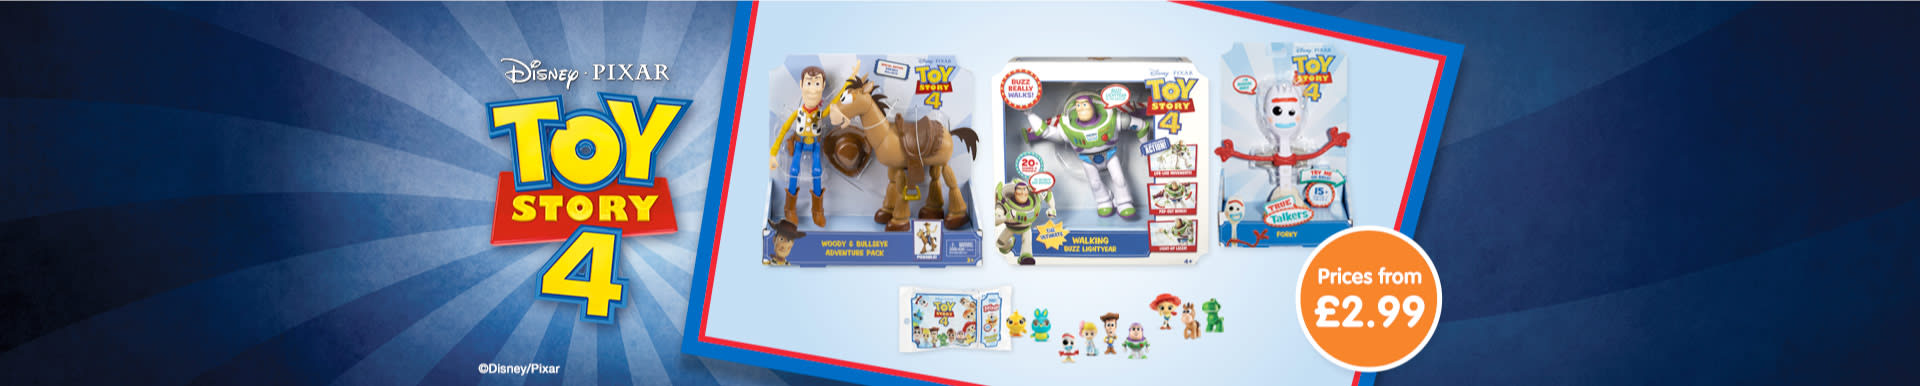 Toy Story 4 Toys now in store at B&M.